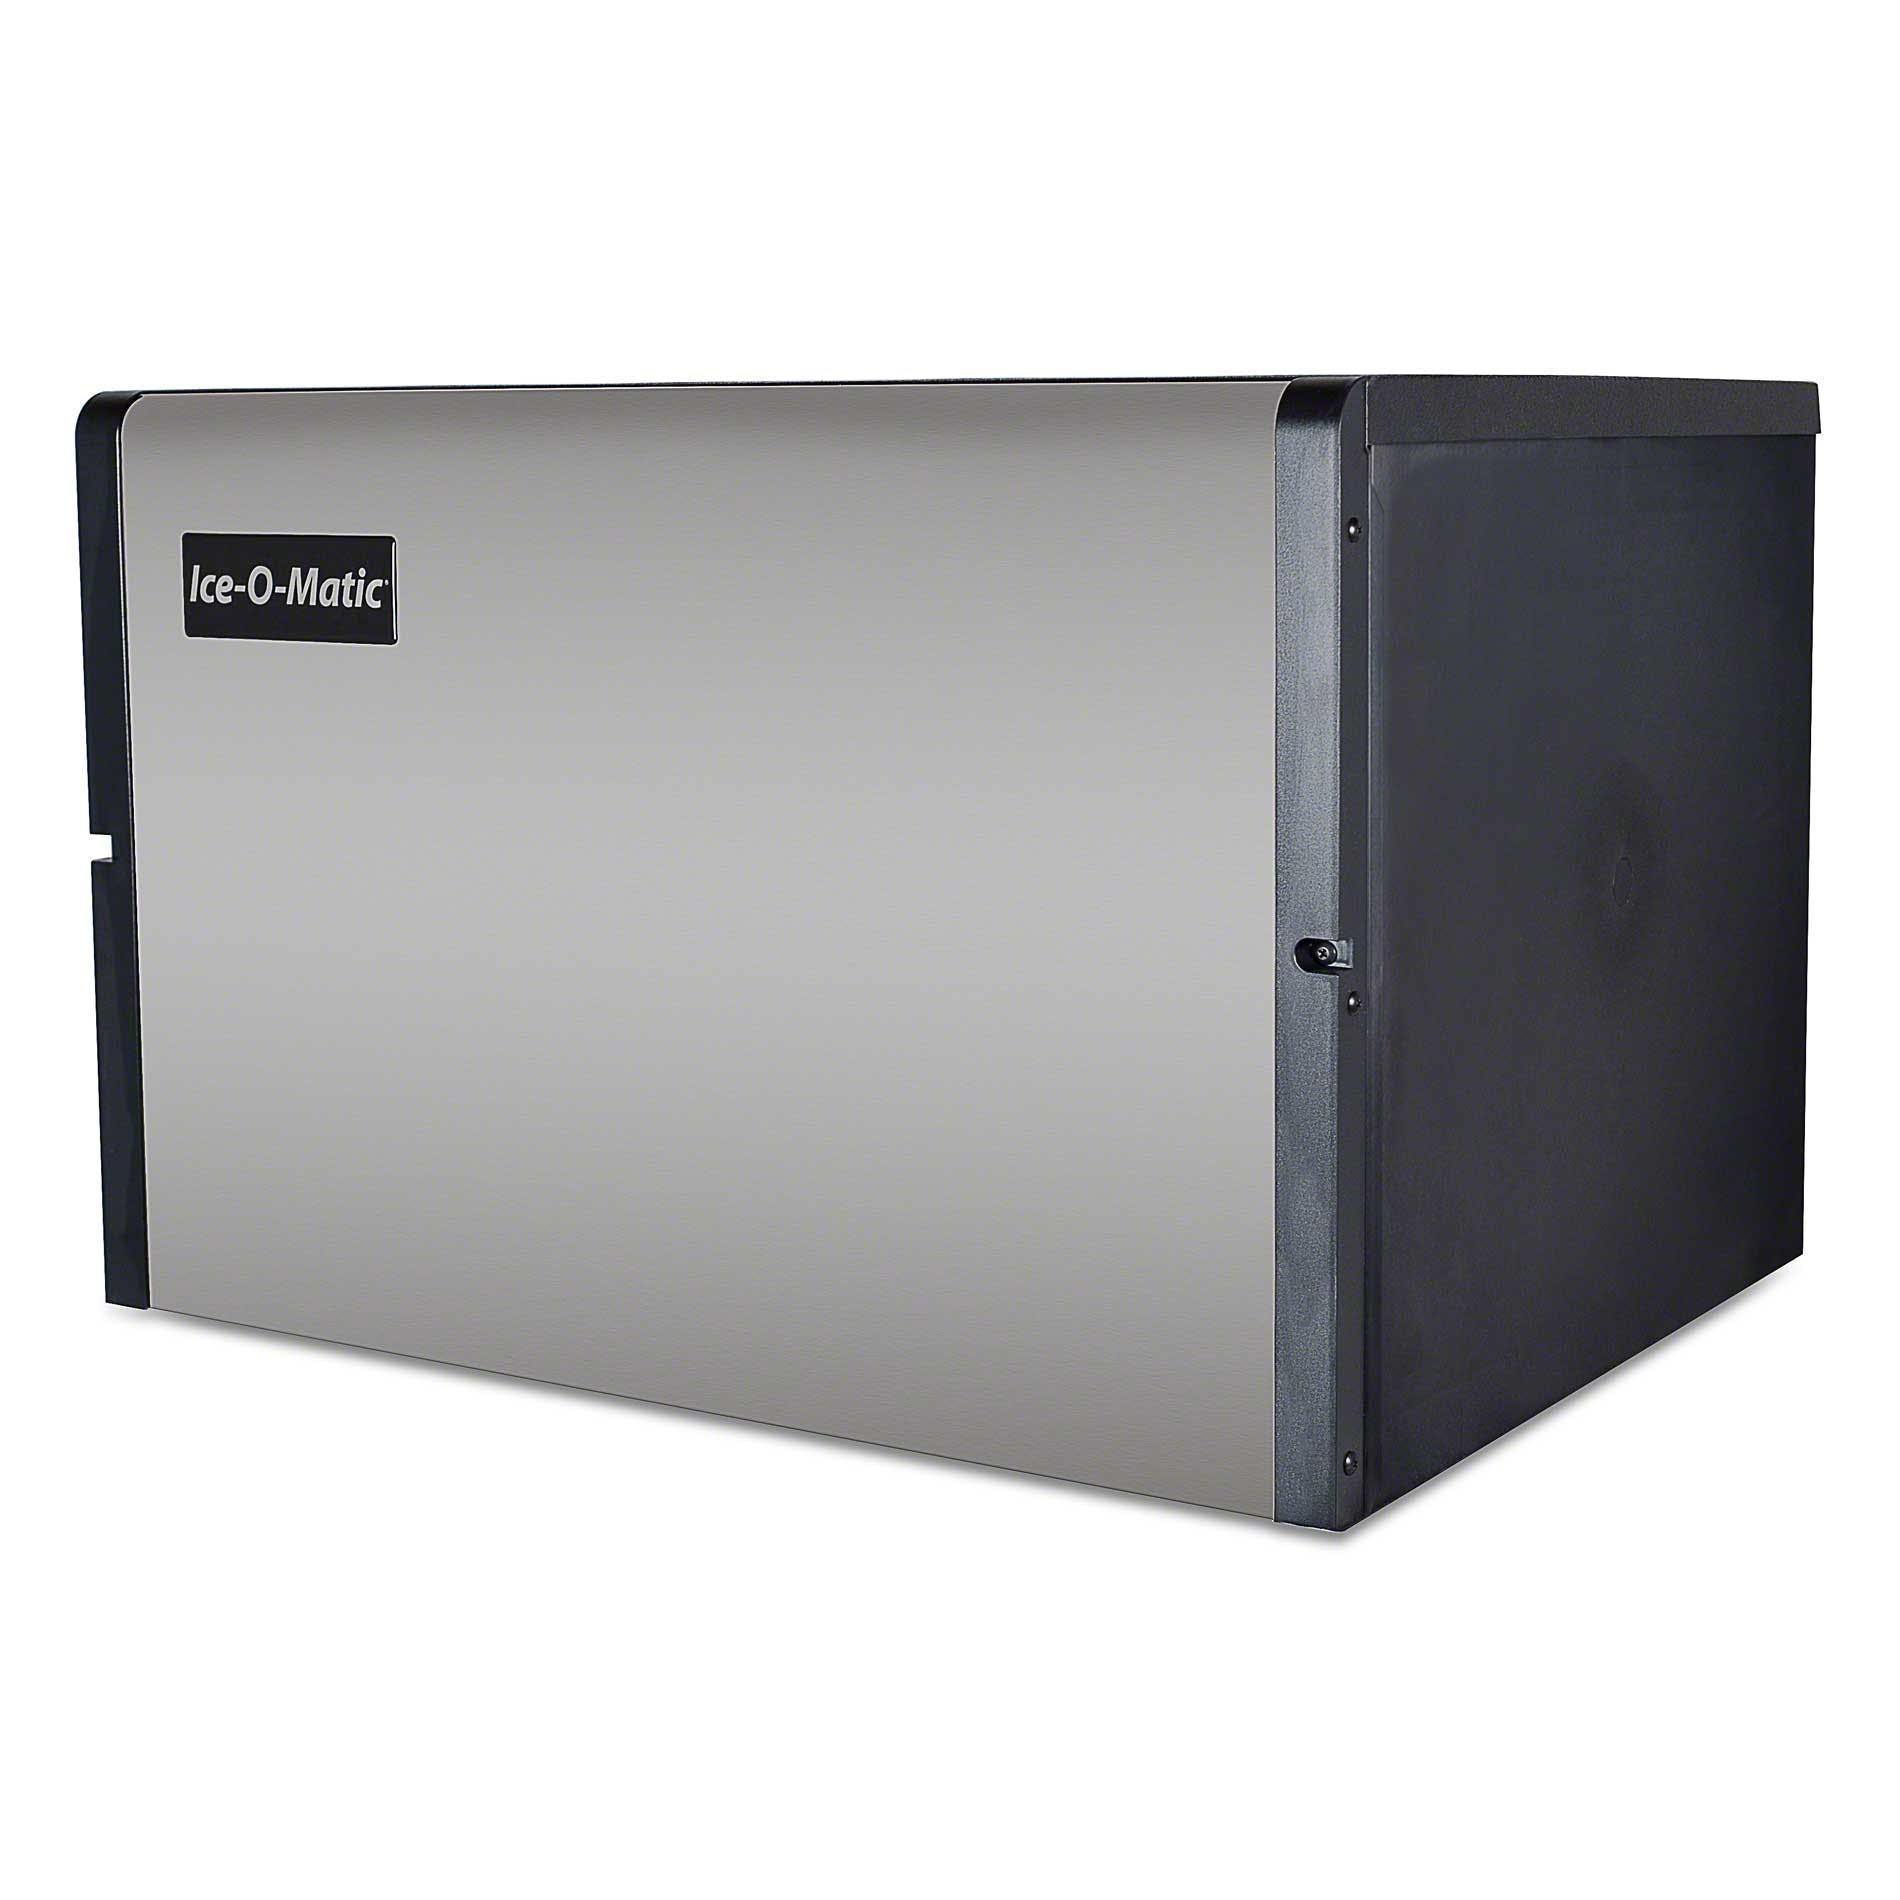 Ice-O-Matic - ICE0400FW 496 lb Full Cube Ice Machine - sold by Food Service Warehouse